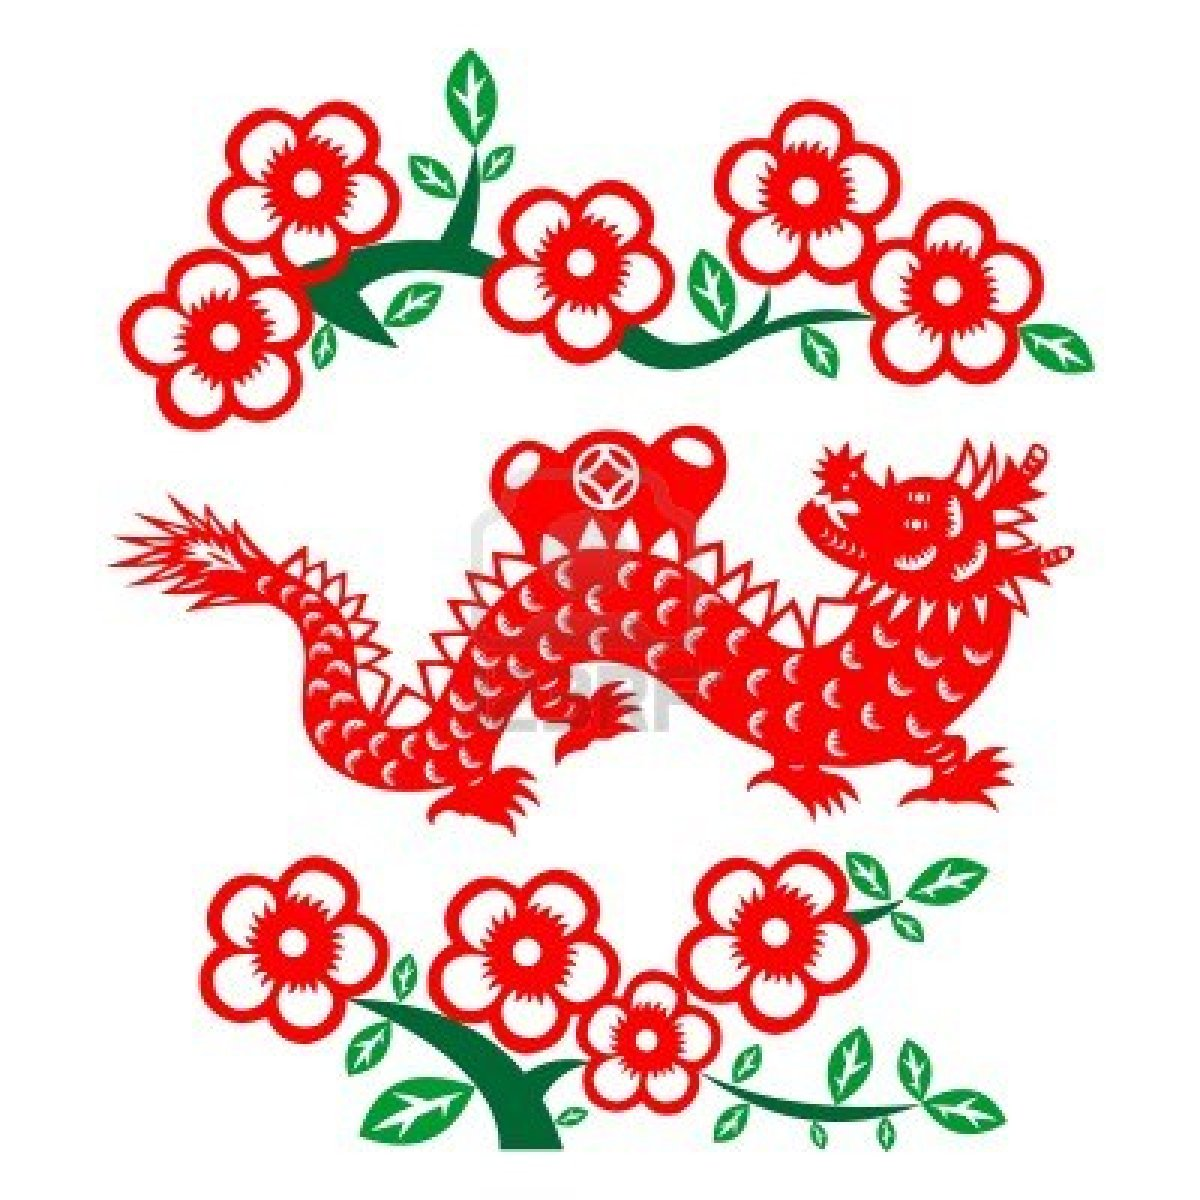 Free Chinese New Year Clipart, Download Free Clip Art, Free Clip Art.